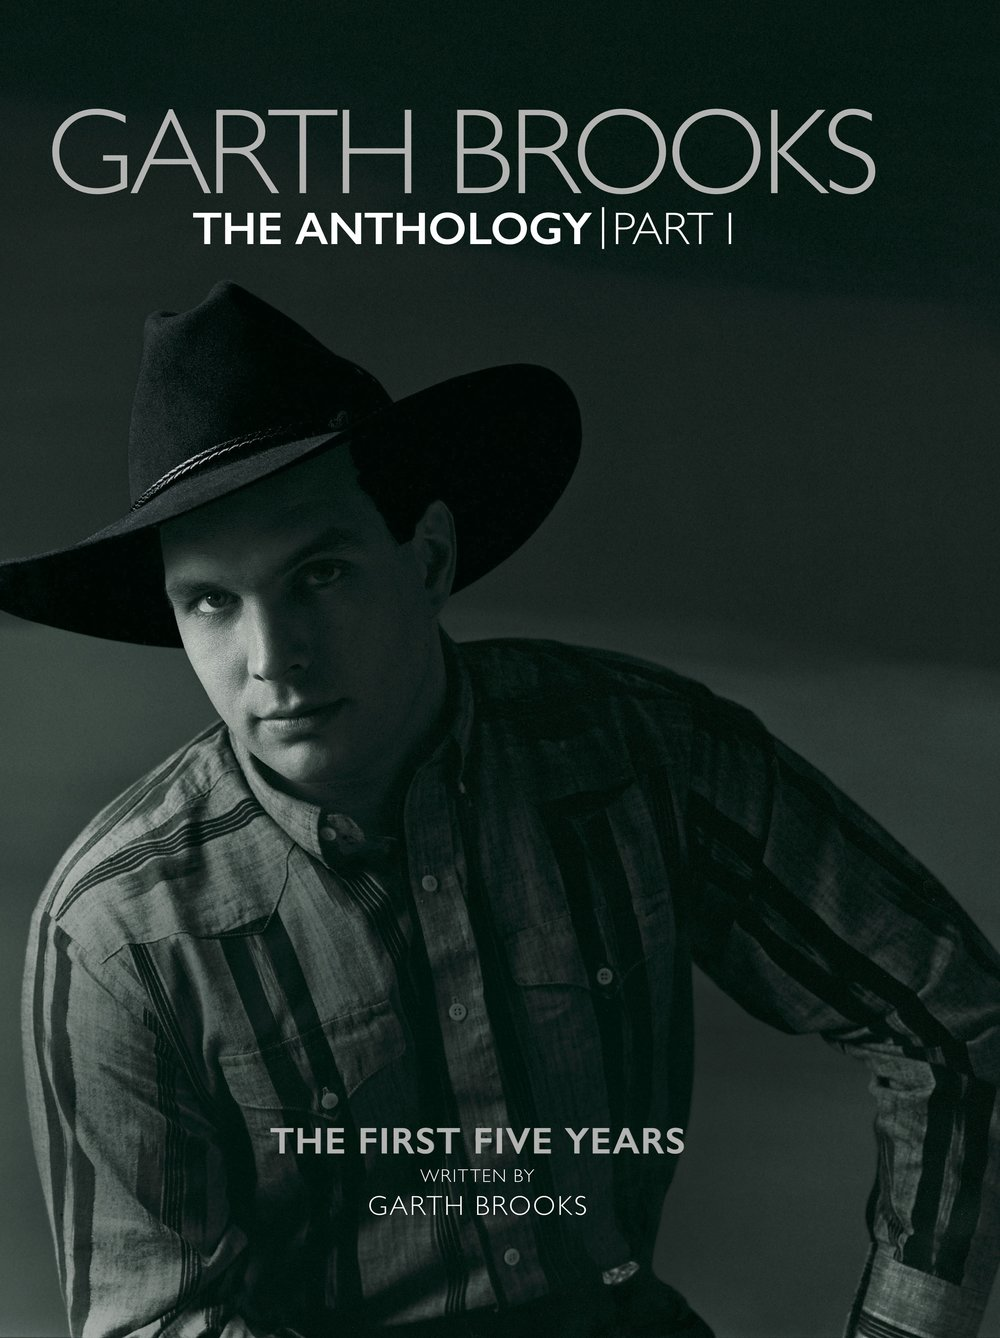 The Garth Brooks Anthology: Part I